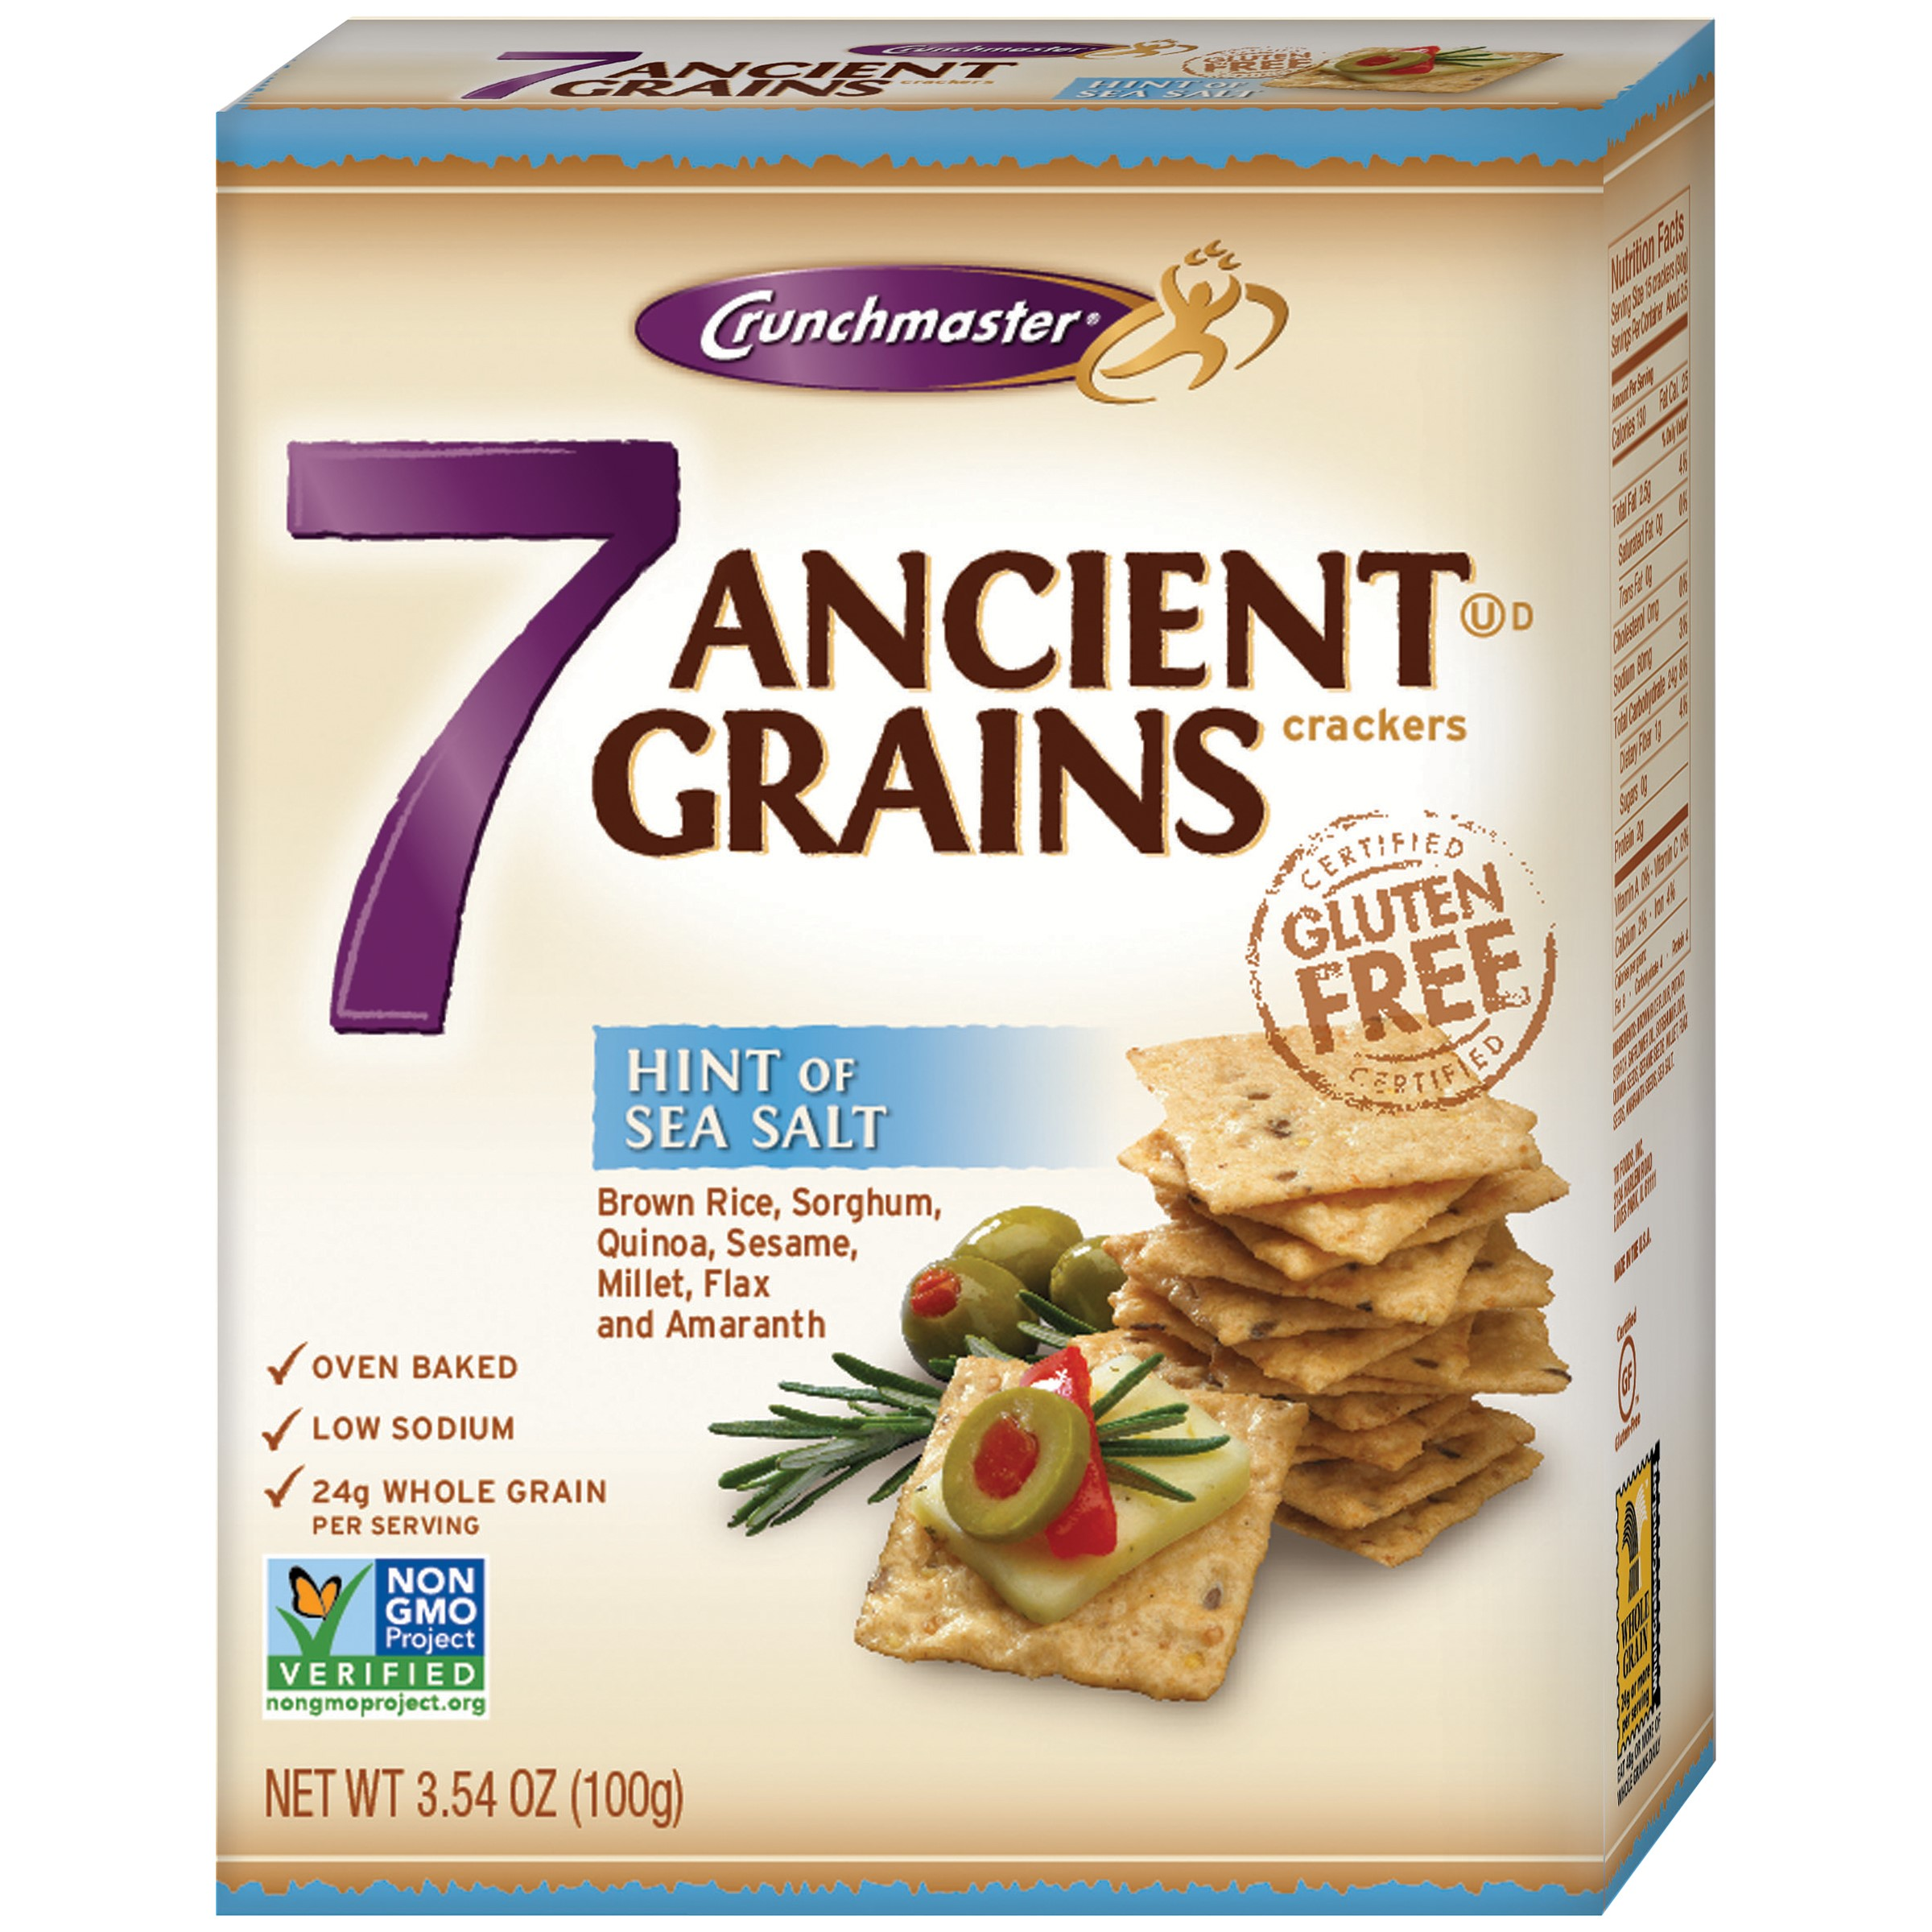 Crunchmaster 7 Ancient Grains with Hint of Sea Salt Crackers 3.54 oz. Box by Crunchmaster